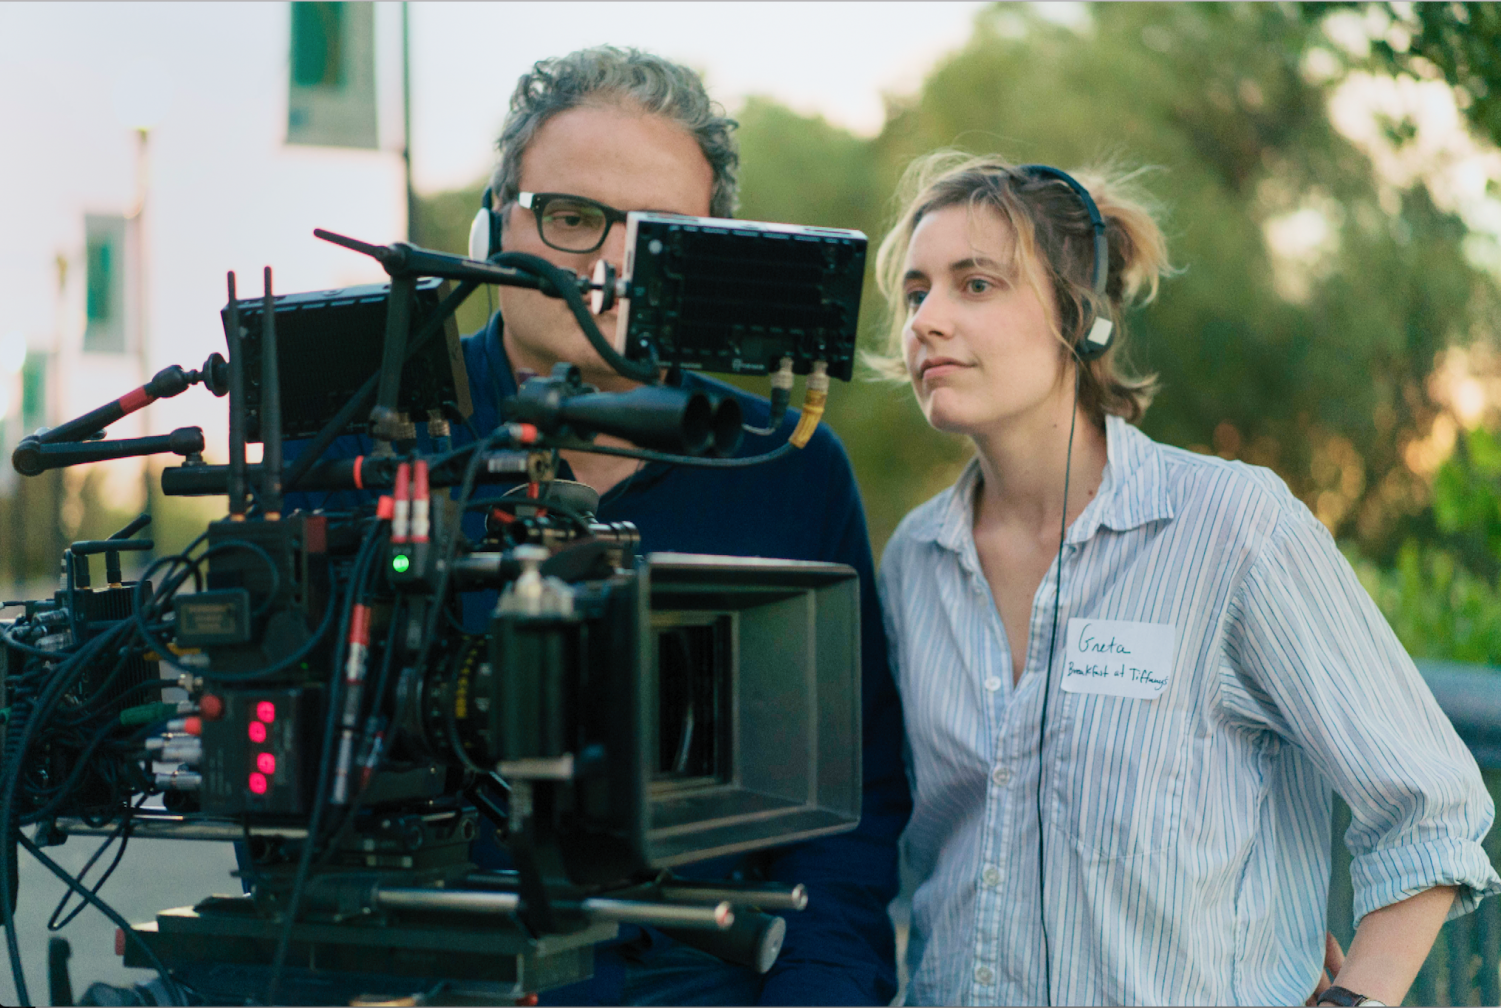 """Greta Gerwig's film """"Lady Bird"""" is her directorial debut and is the best reviewed film of all time on Rotten Tomatoes with a rating of 100%."""